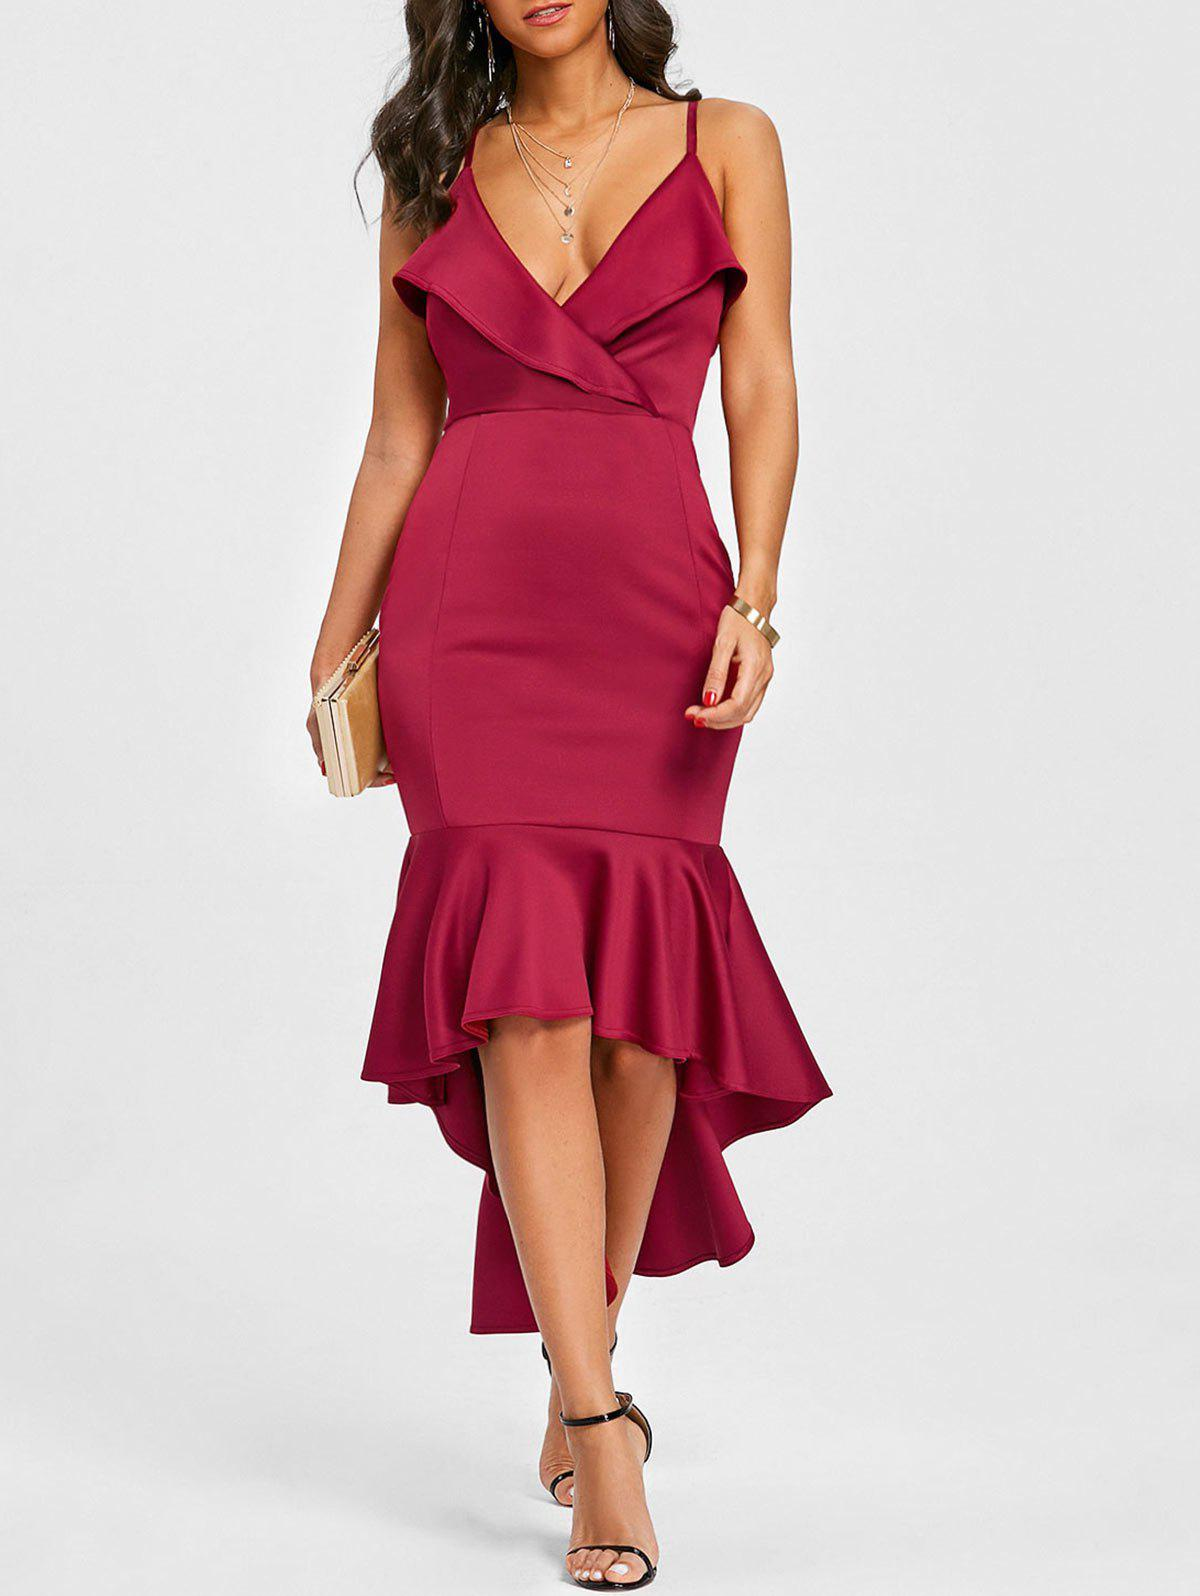 Cami Strap Flounce High Low Mermaid Dress - BURGUNDY S